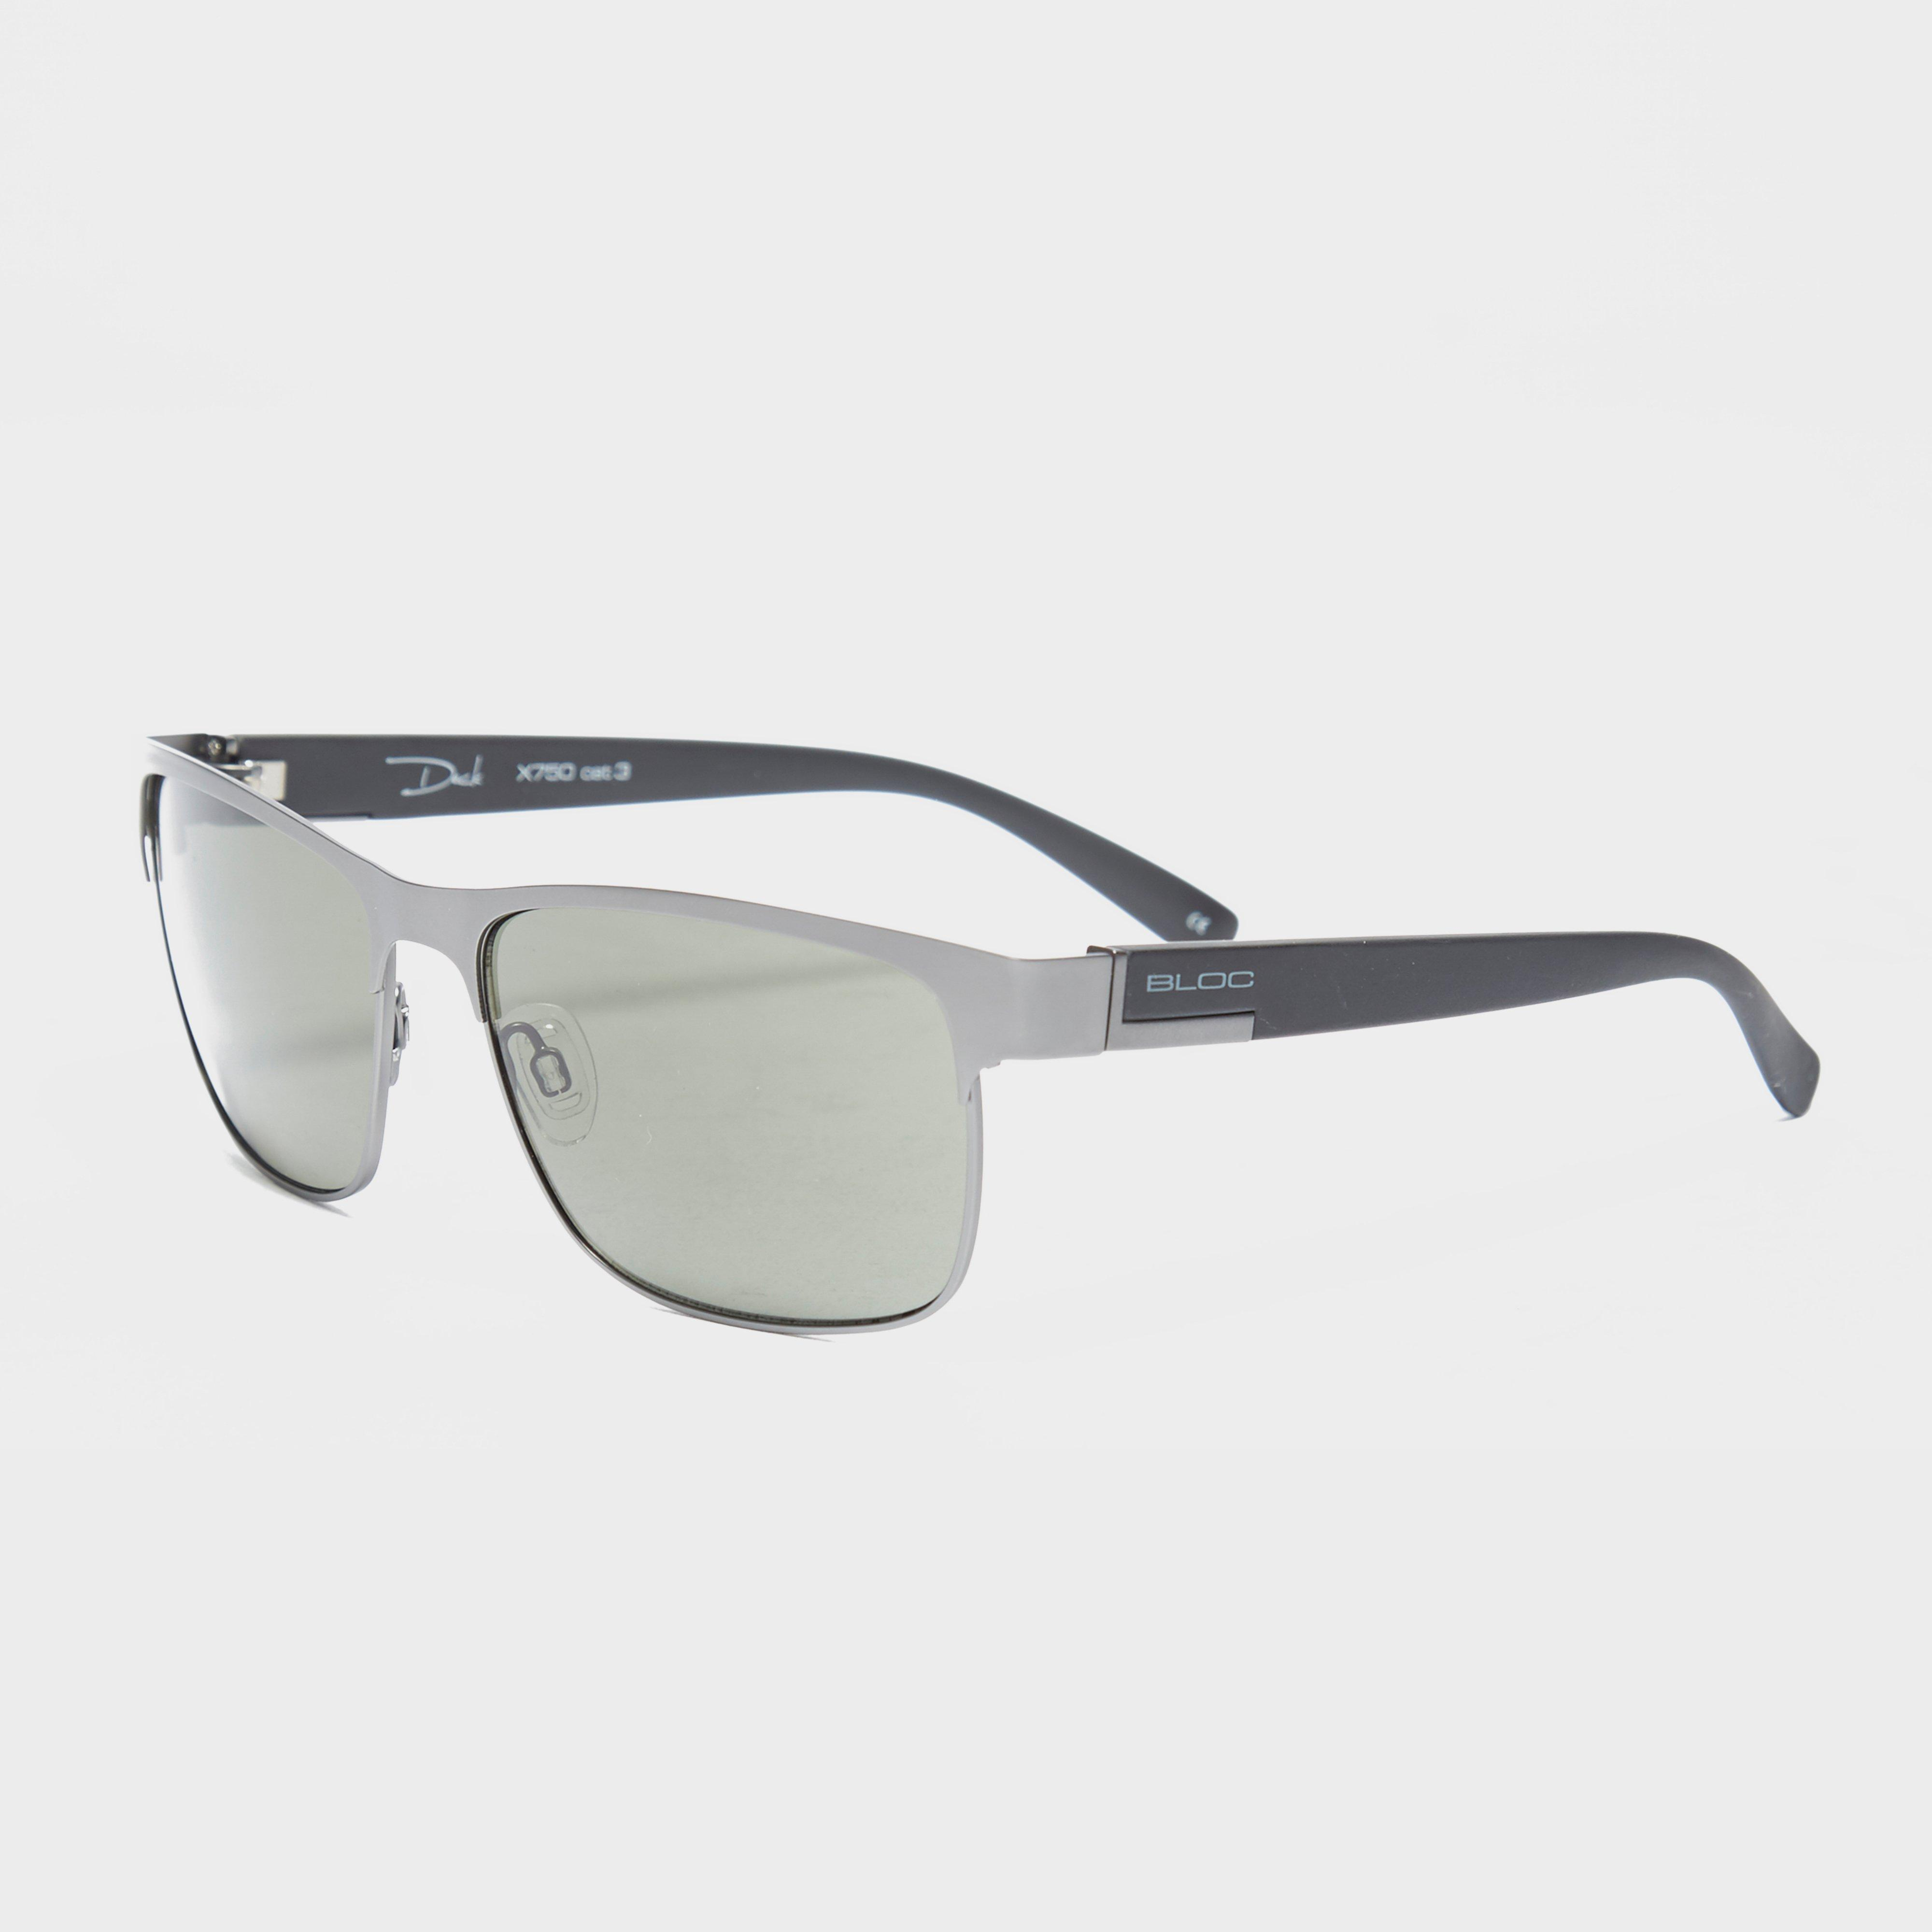 Bloc Deck X750 Sunglasses, Black